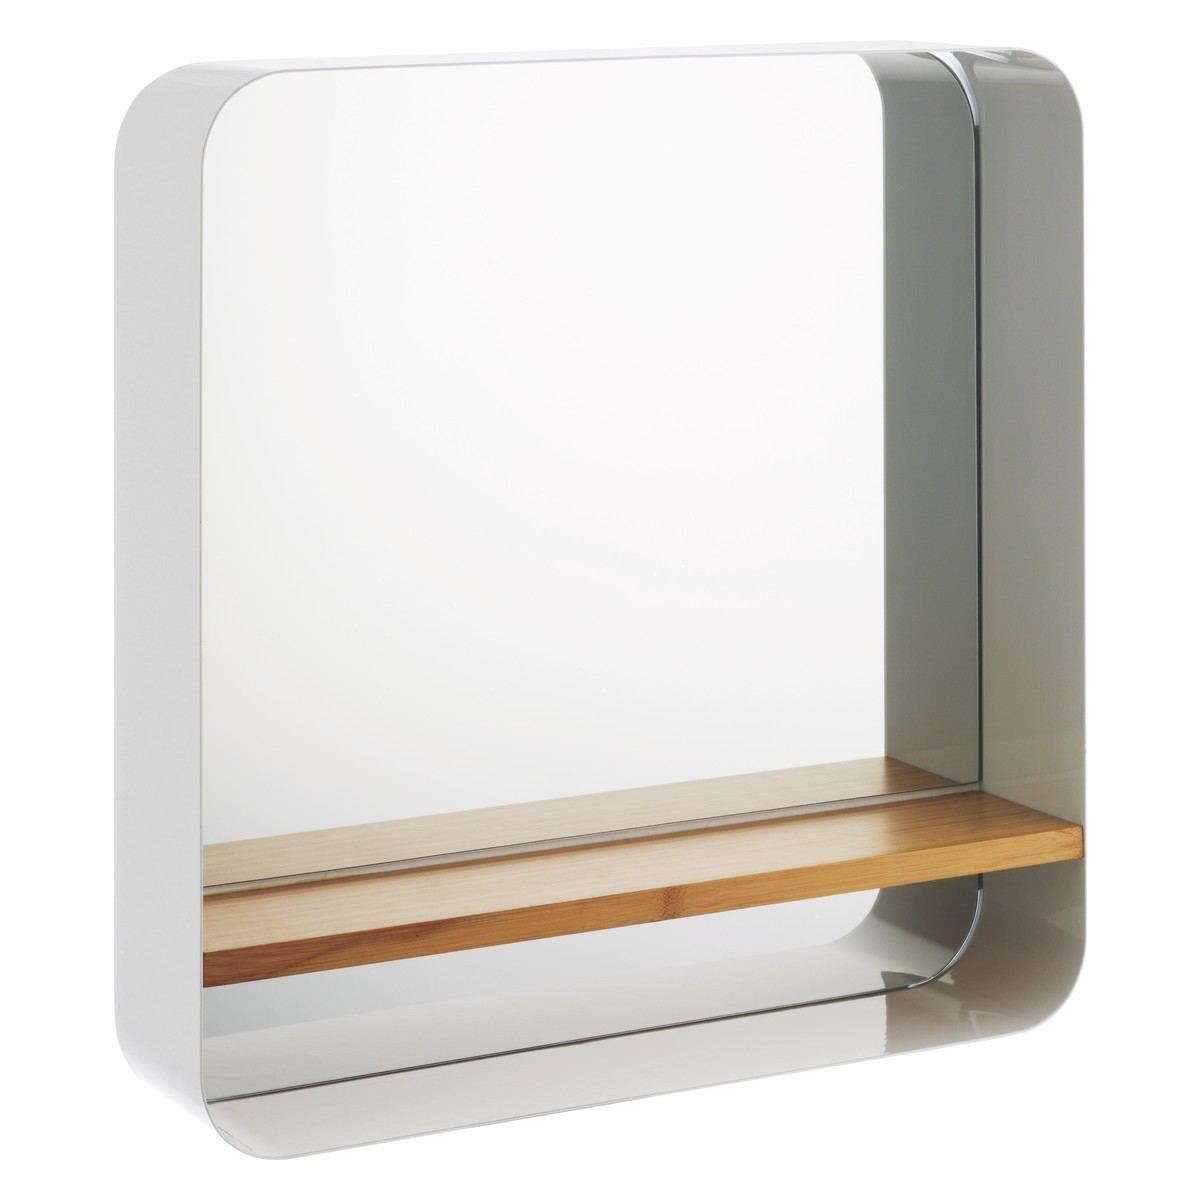 Bethany White Wall Mounted Mirror With Bamboo Shelf Buy Now At Throughout Buy A Mirror (Image 1 of 15)